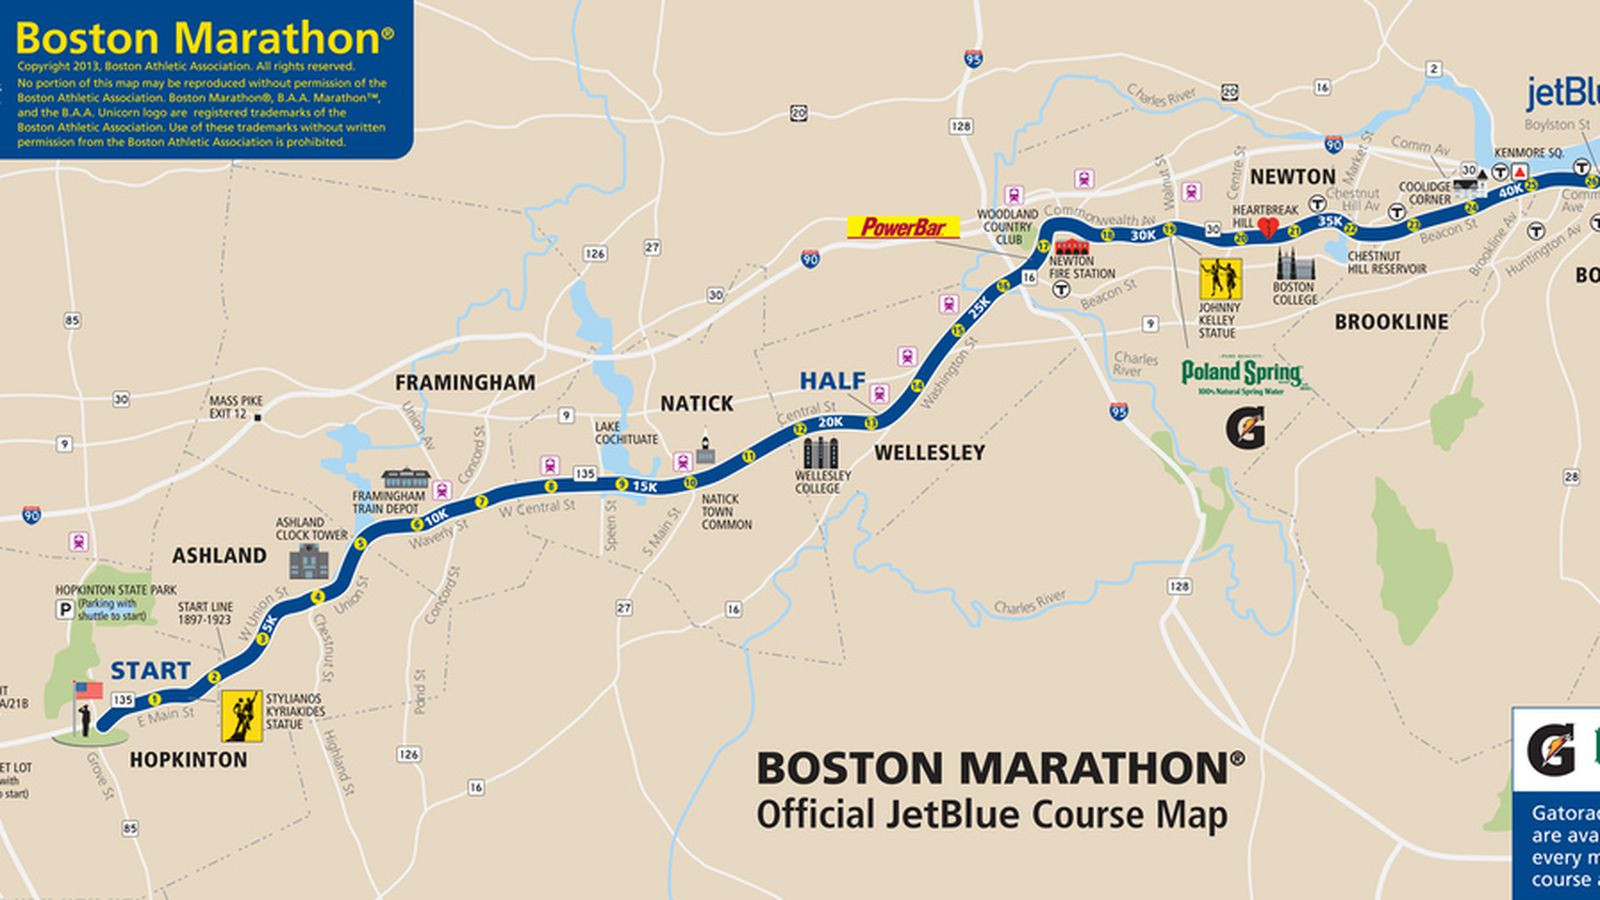 Boston Marathon 2013 Route Information Course Map And